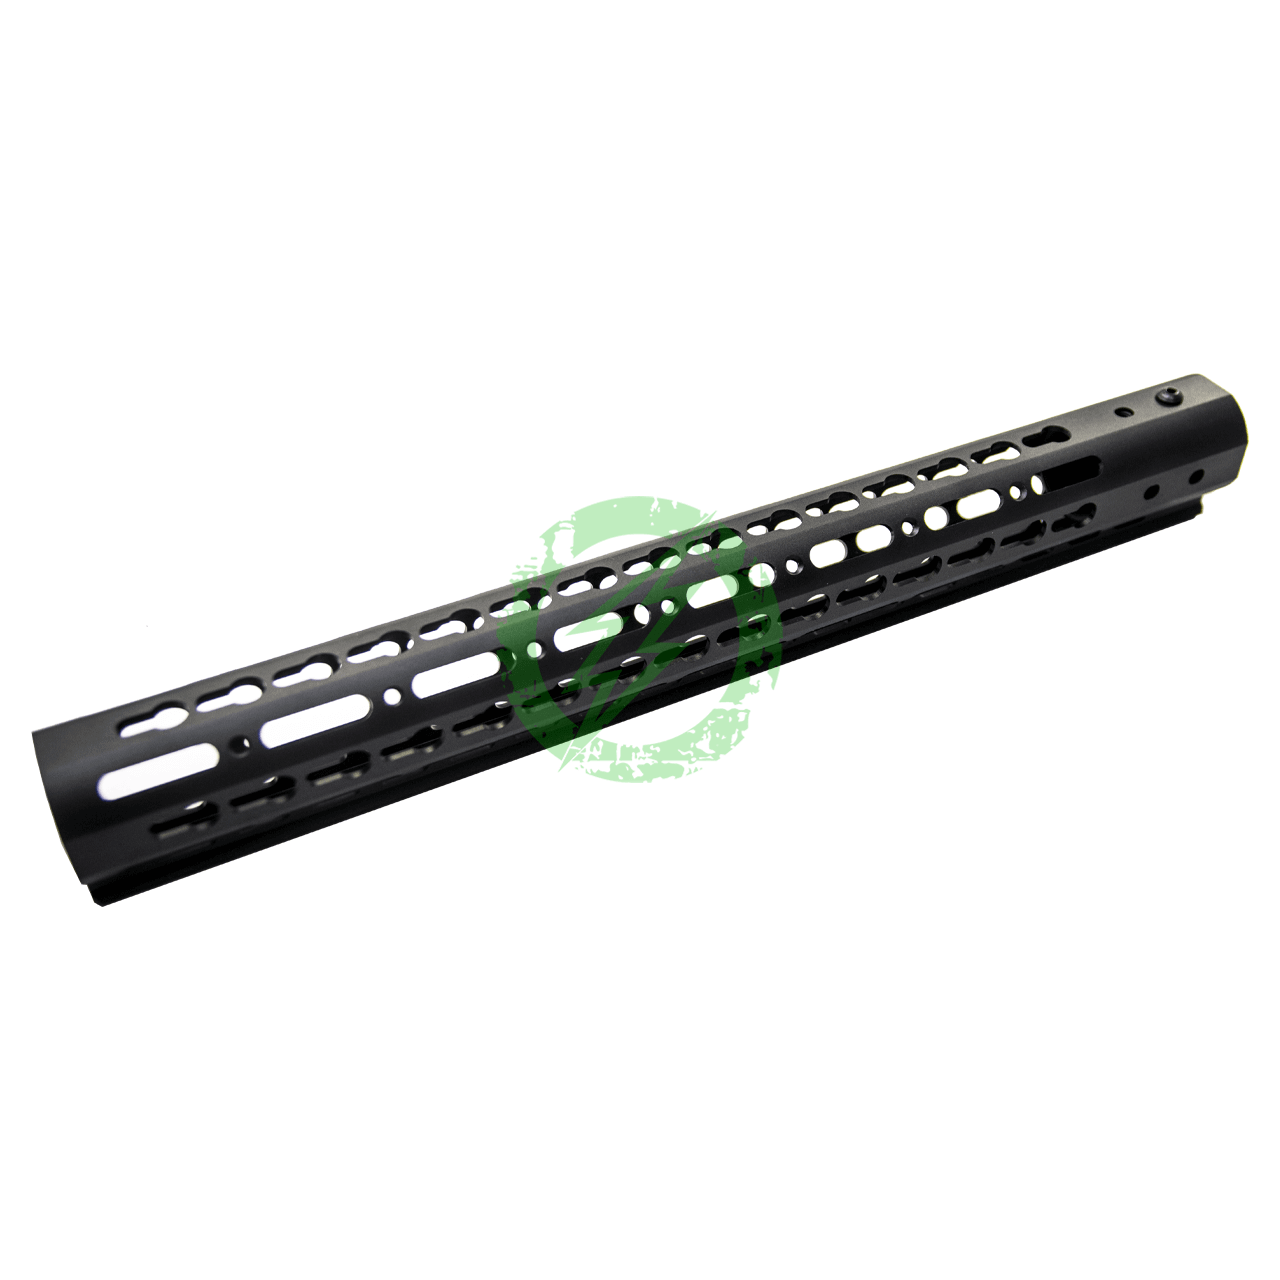 "ZCI 15"" Aluminum CNC Keymod Handguard for M4 